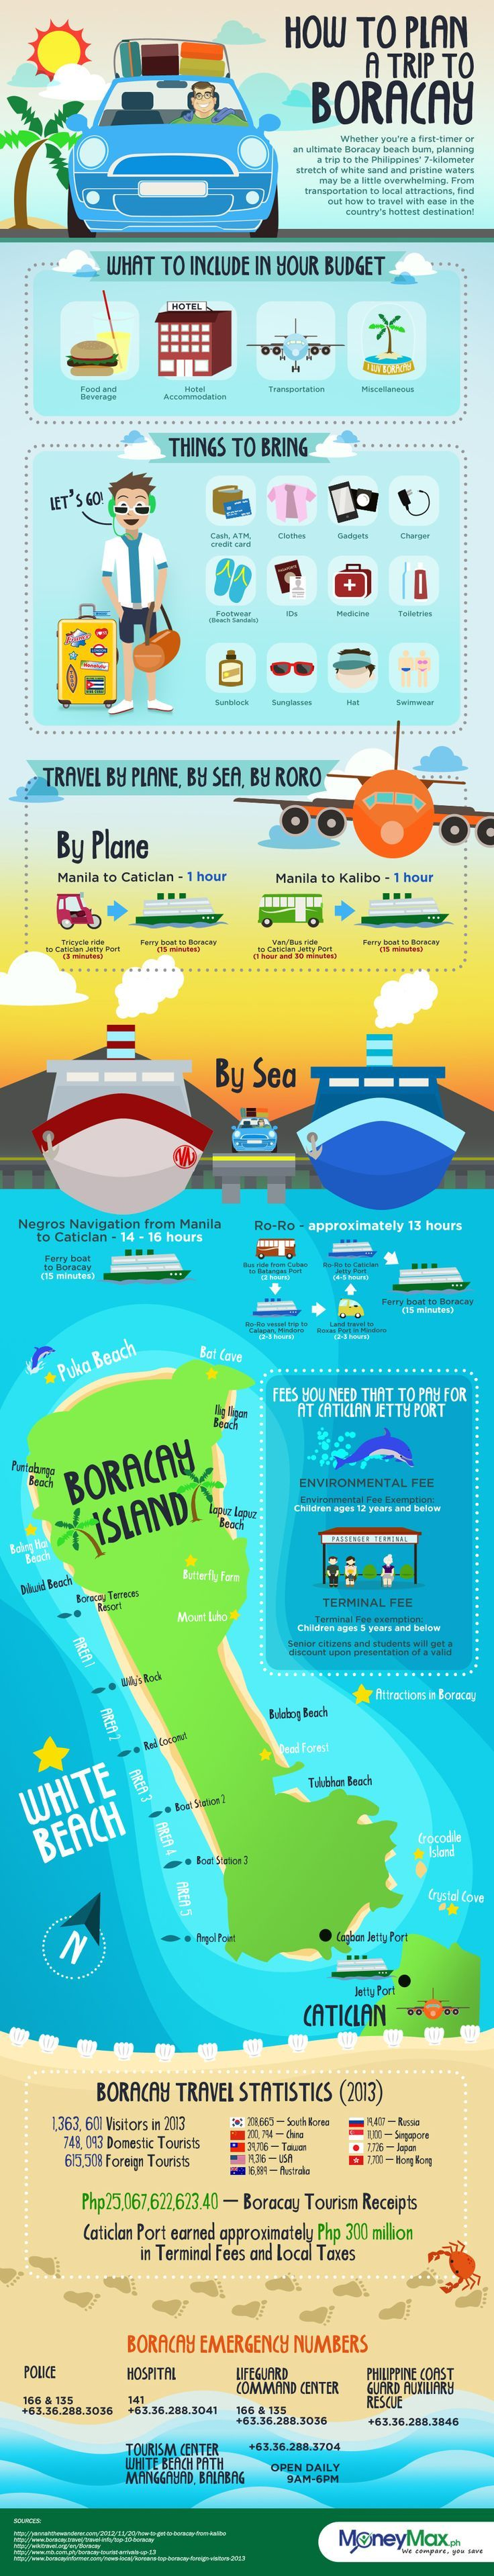 Infographic: Your guide to a well-planned Boracay vacation | ABS-CBN News